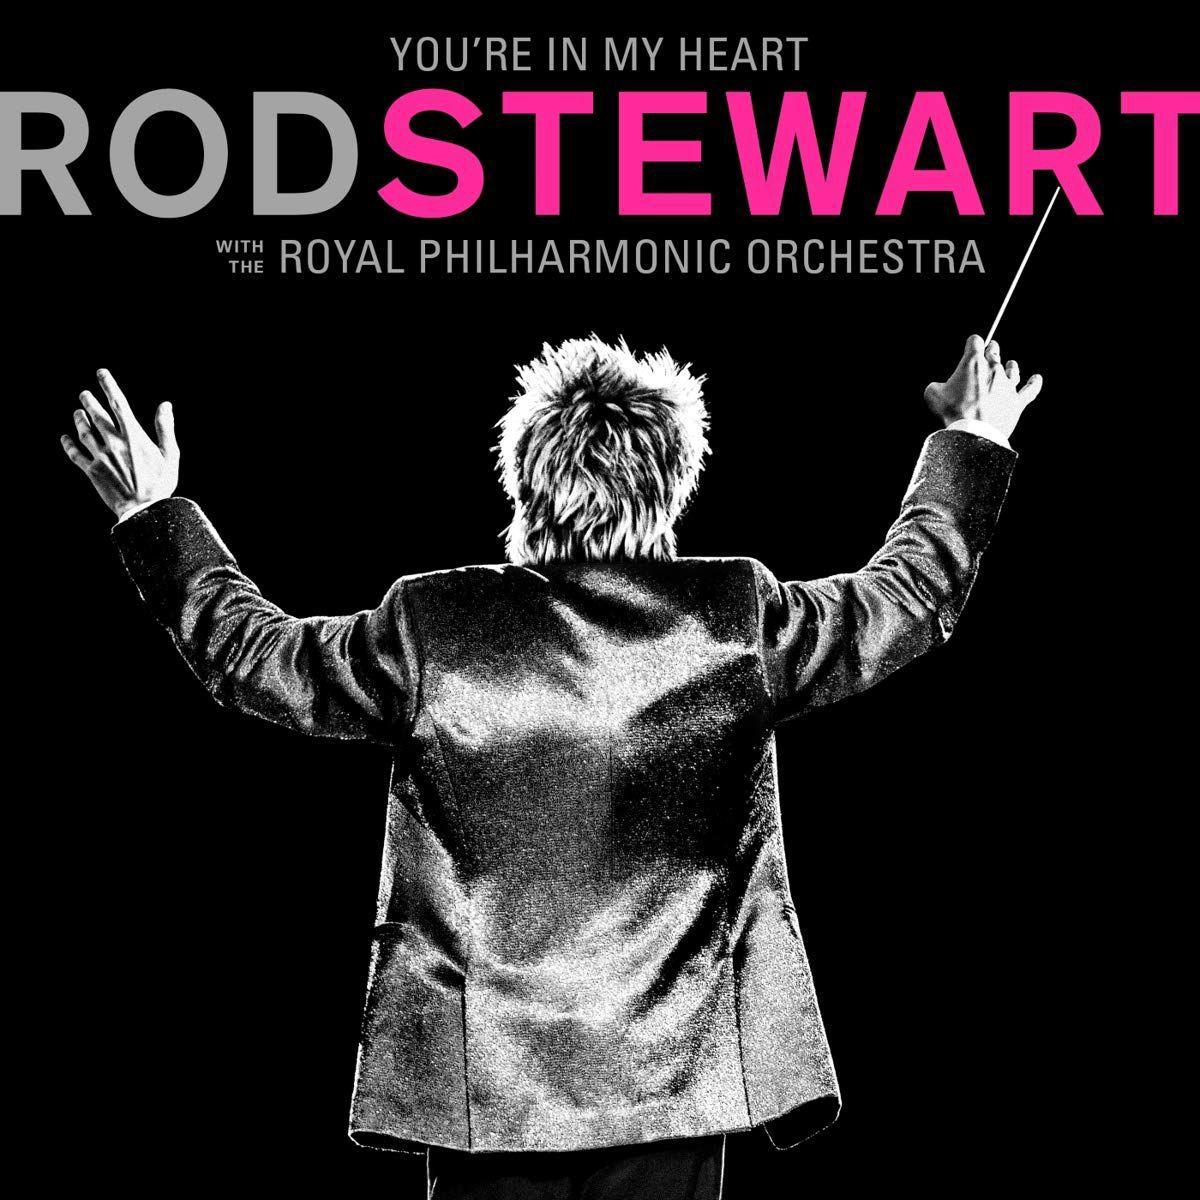 Music review: Rod Stewart - 'You're in My Heart: Rod Stewart with the Royal Philharmonic Orchestra'